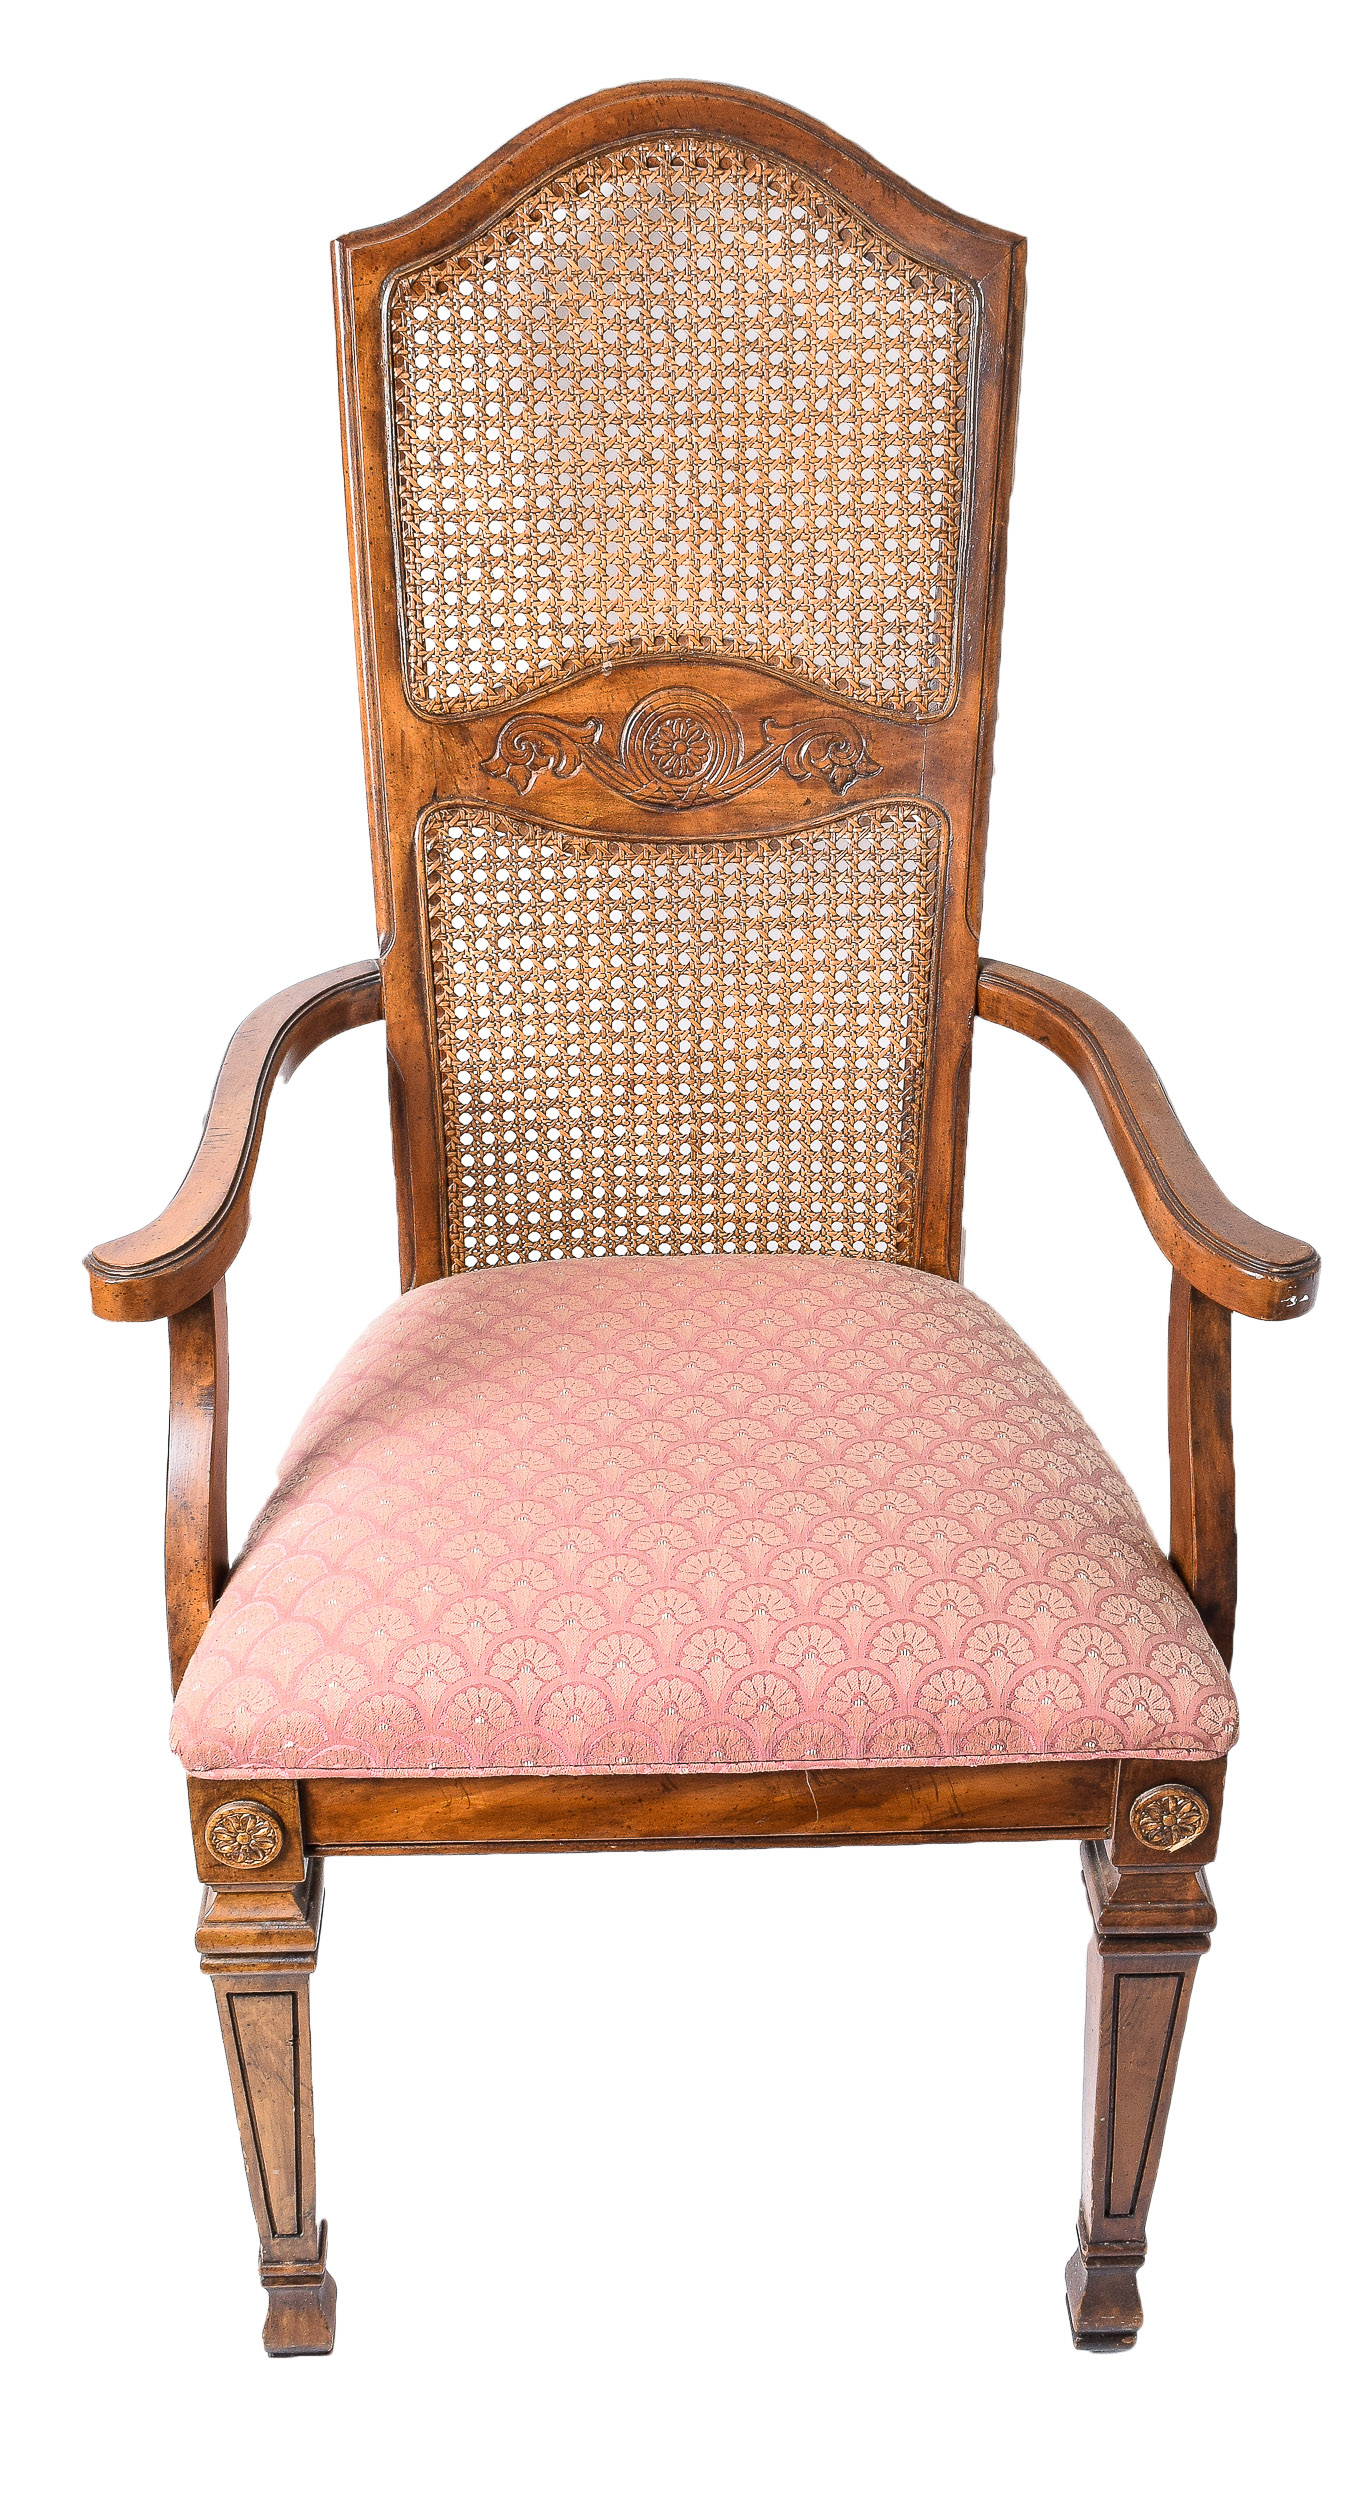 cane back chairs antique white executive office chair vintage french provincial style ebth